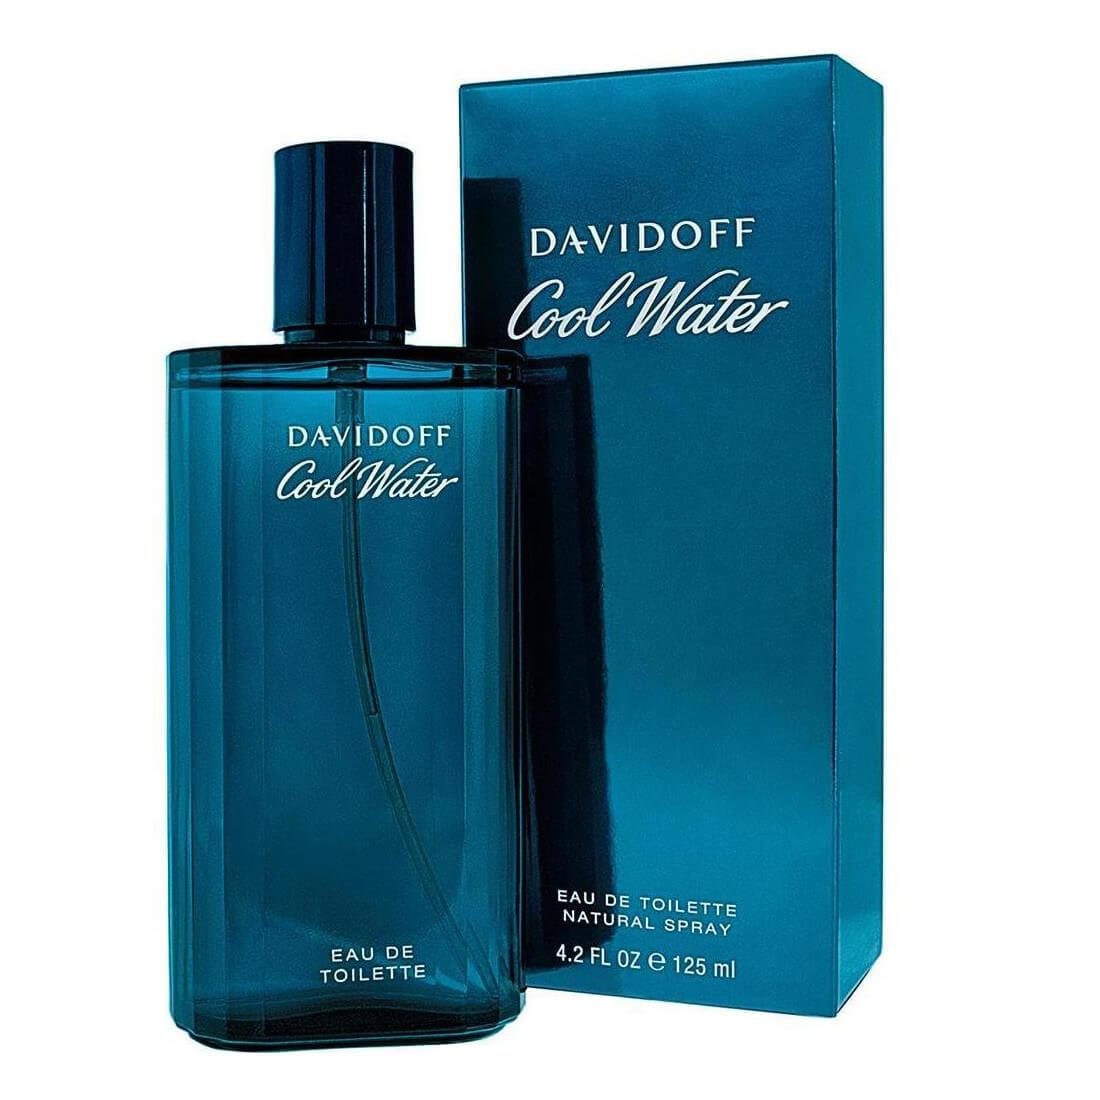 Davidoff Cool Water For Men Perfume - 125ml